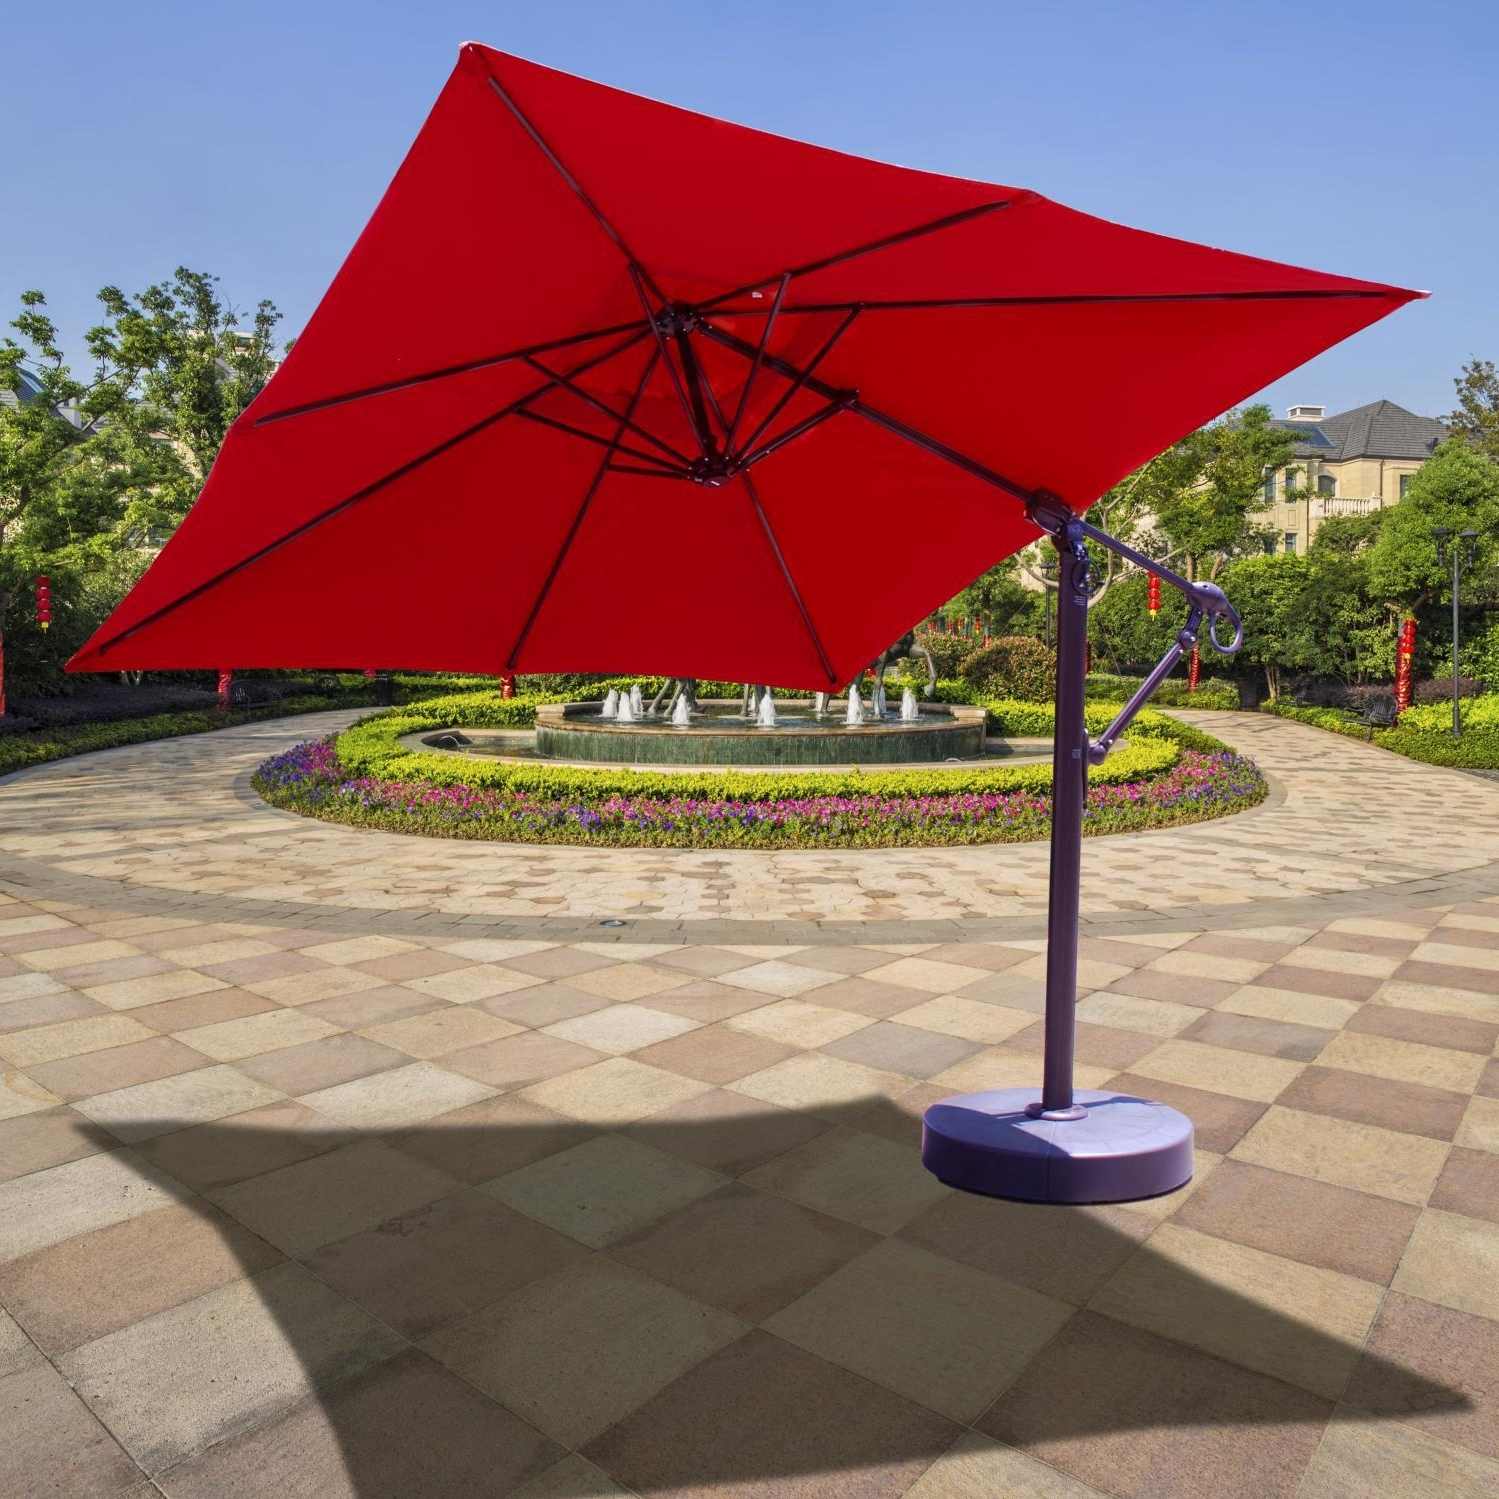 10 Ft Patio Umbrellas Regarding Best And Newest Galtech 10 Ft Aluminum Square Cantilever Patio Umbrella With Easy (View 12 of 20)